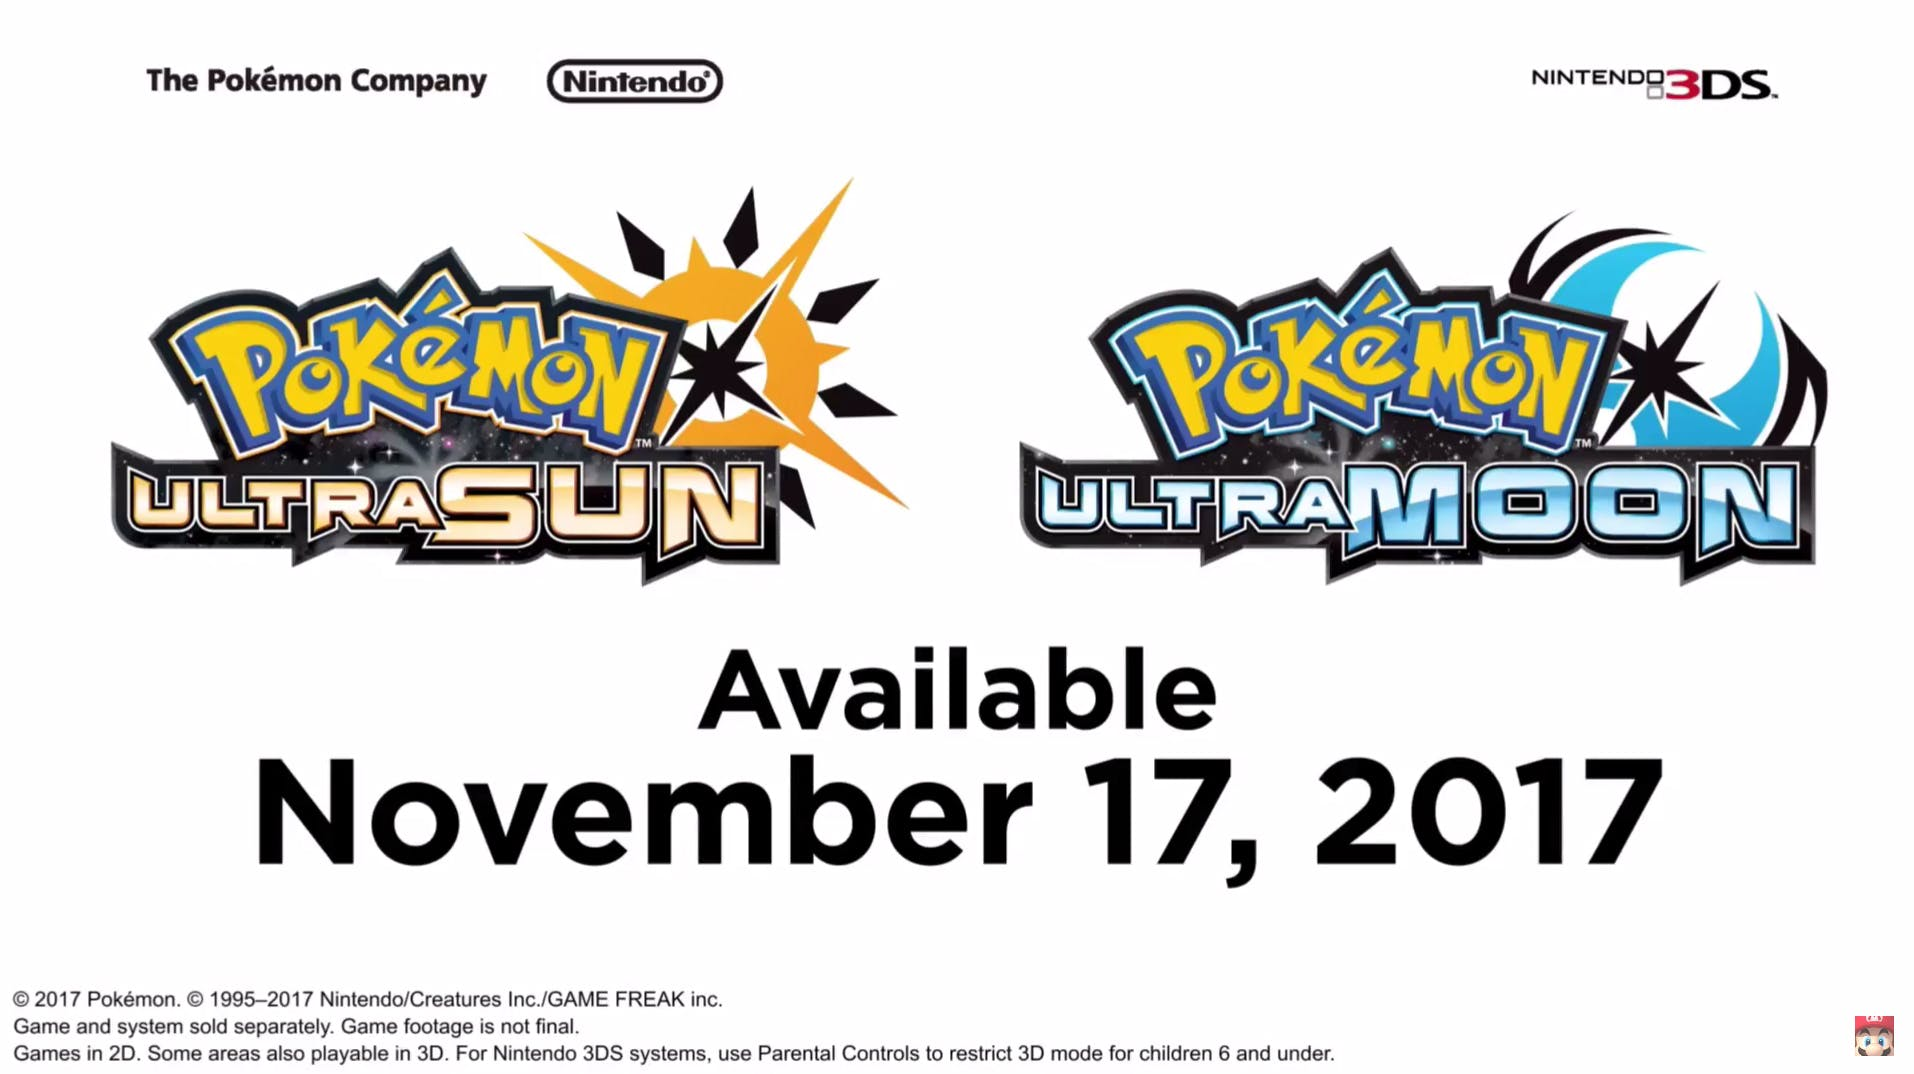 Pokemon UltraSun and UltraMoon